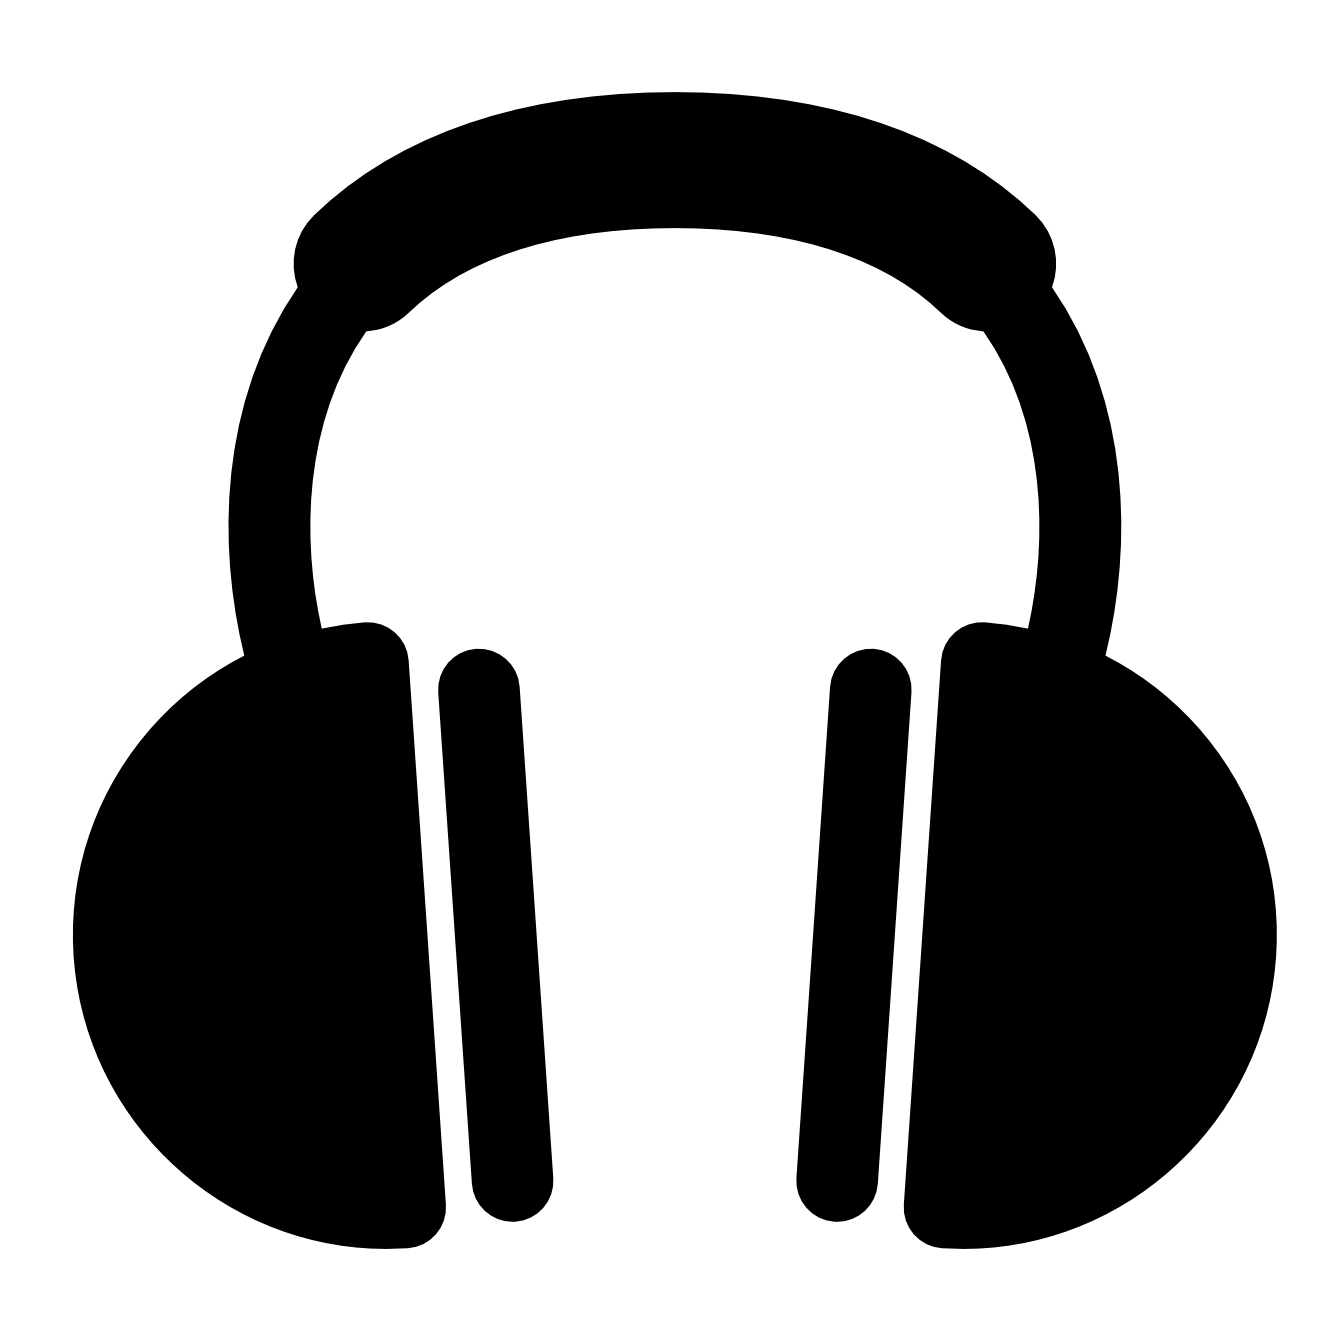 Headphones clipart dj headphone.  collection of no